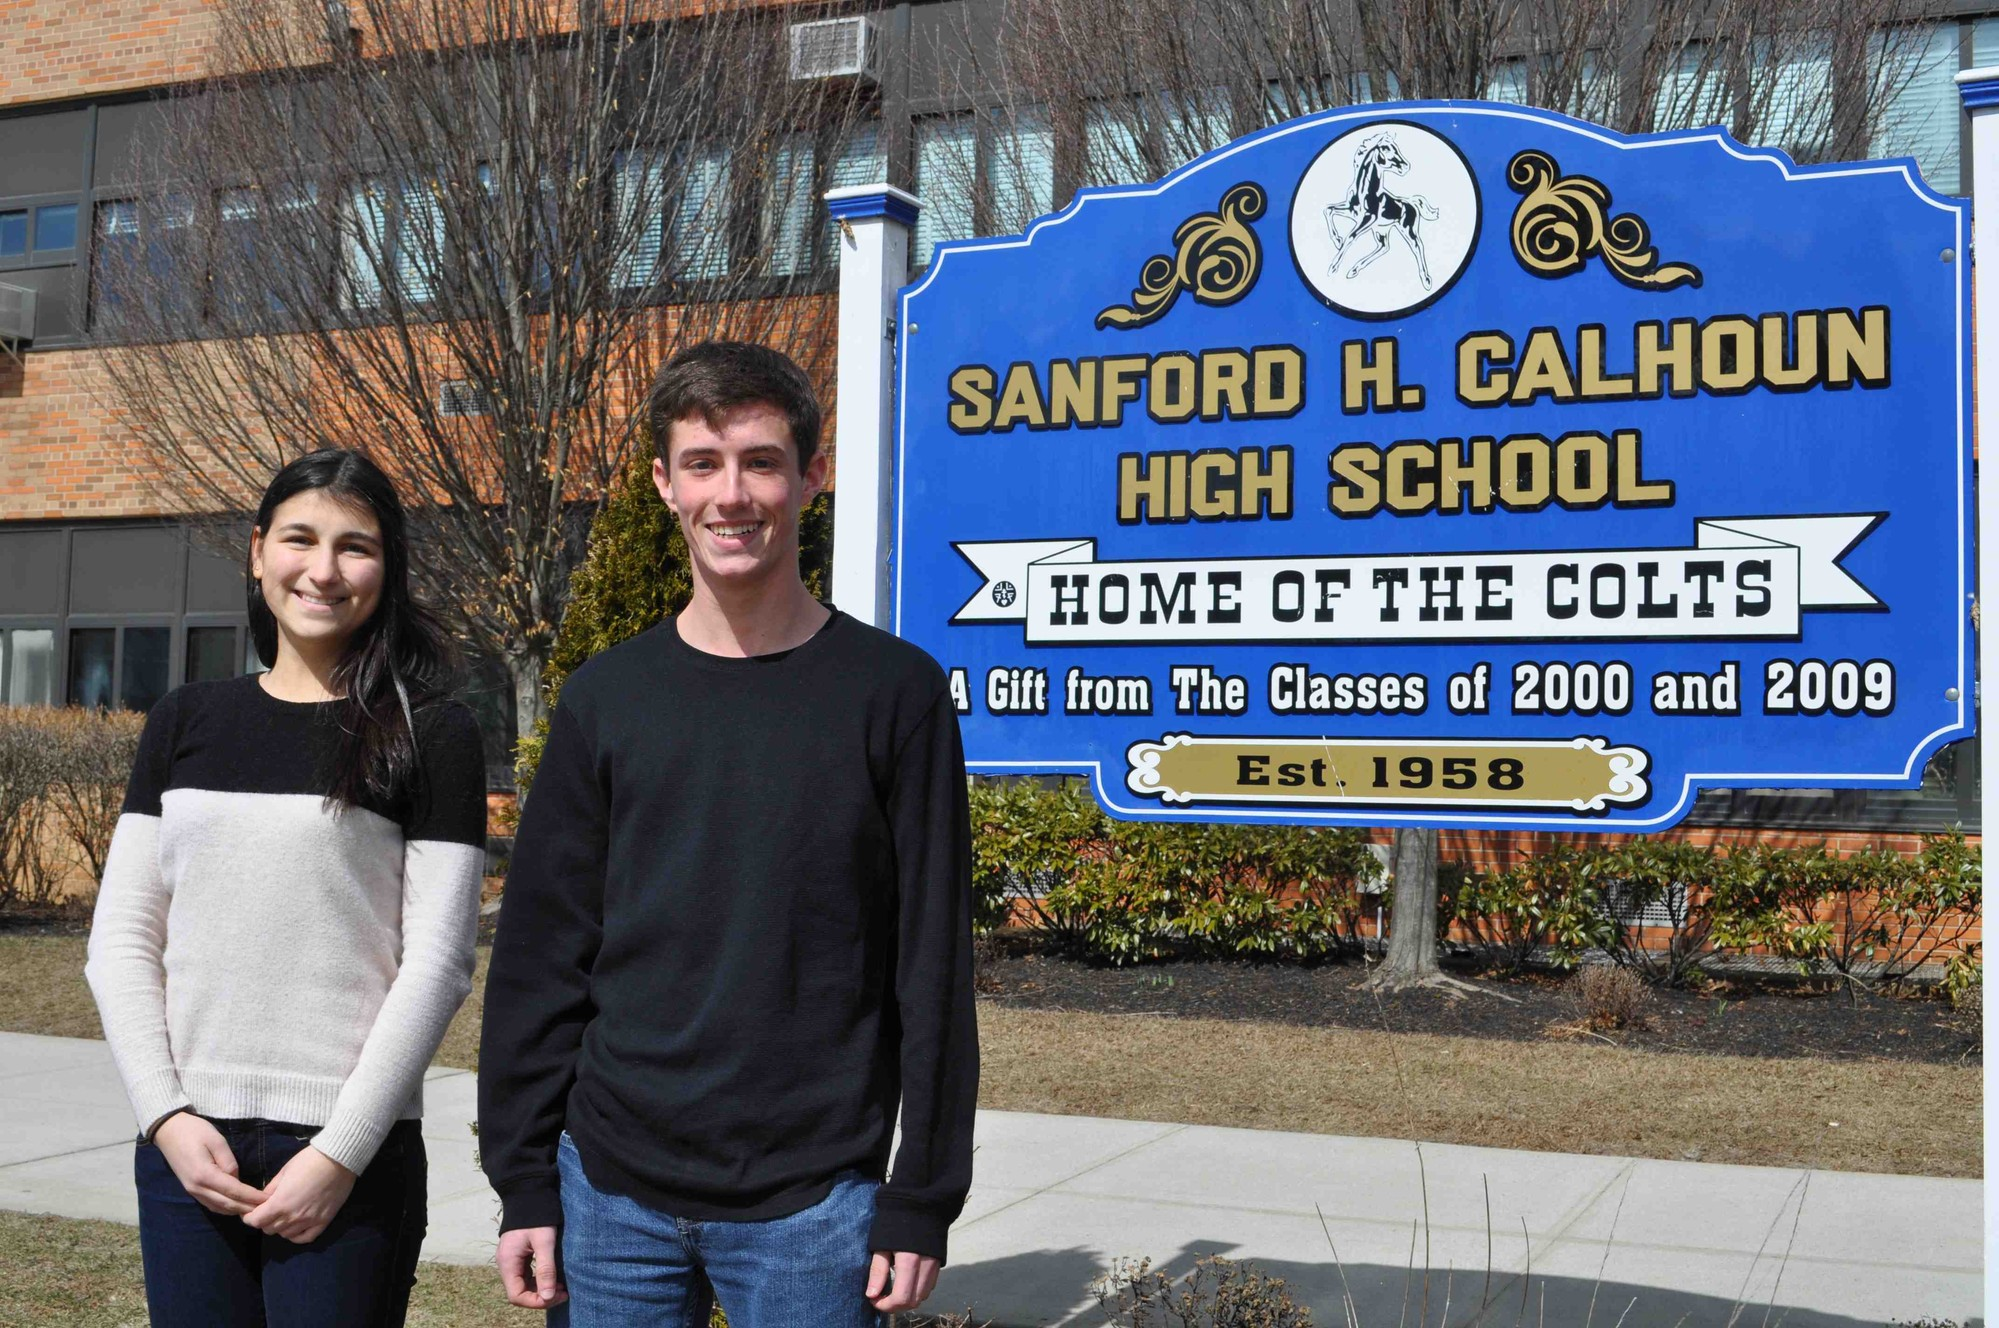 Katherine Kustas and Alexander Boyd have been named valedictorian and salutatorian, respectively, for Calhoun High School's class of 2014.